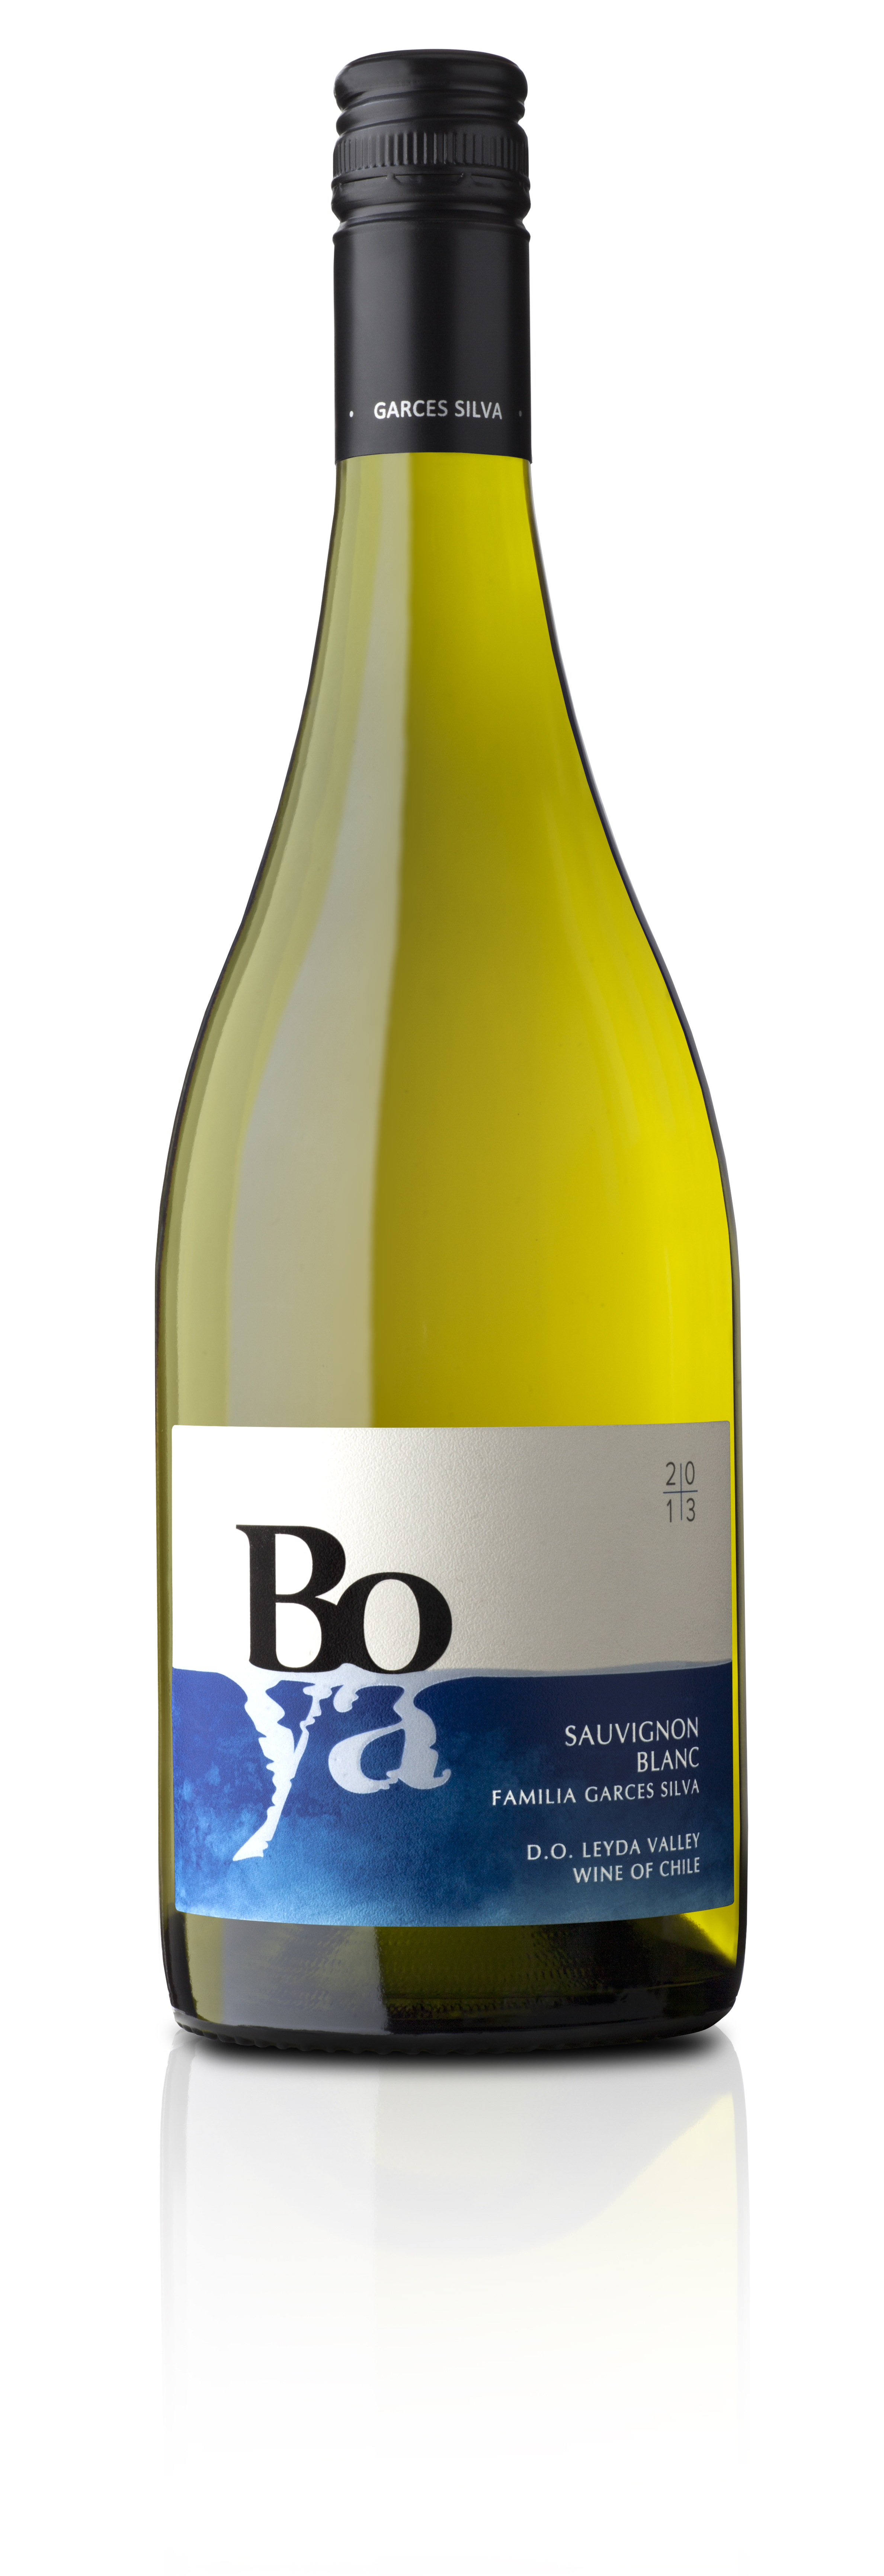 Boya_Bottled_SB13_300.jpg